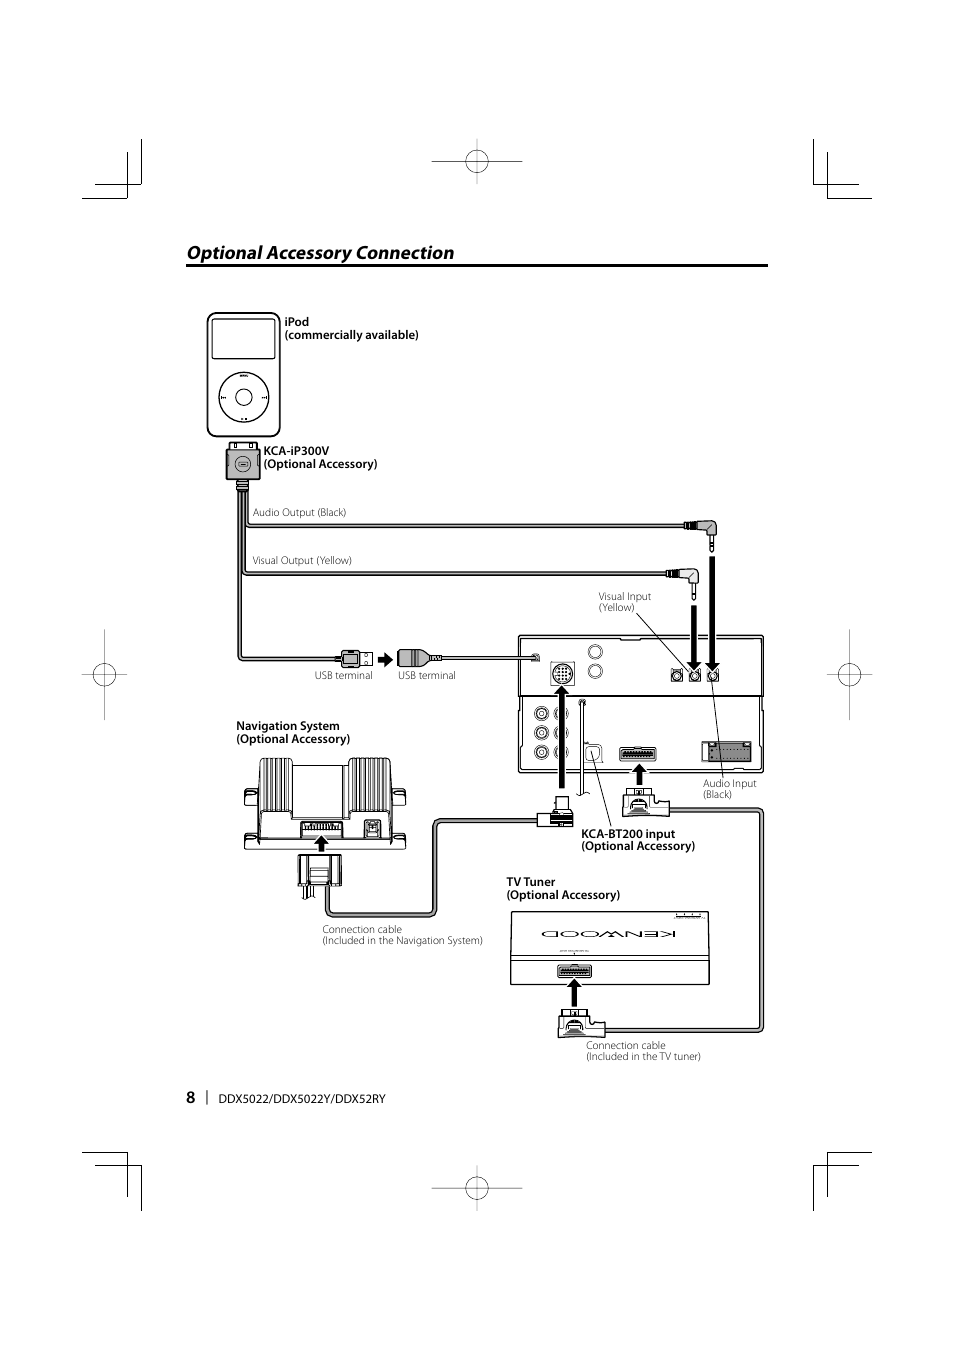 Kenwood Ddx 5022 Manual One Word Quickstart Guide Book Wiring Diagram Optional Accessory Connection Ddx5022 User Page 8 Rh Manualsdir Com Ddx319 Ddx470